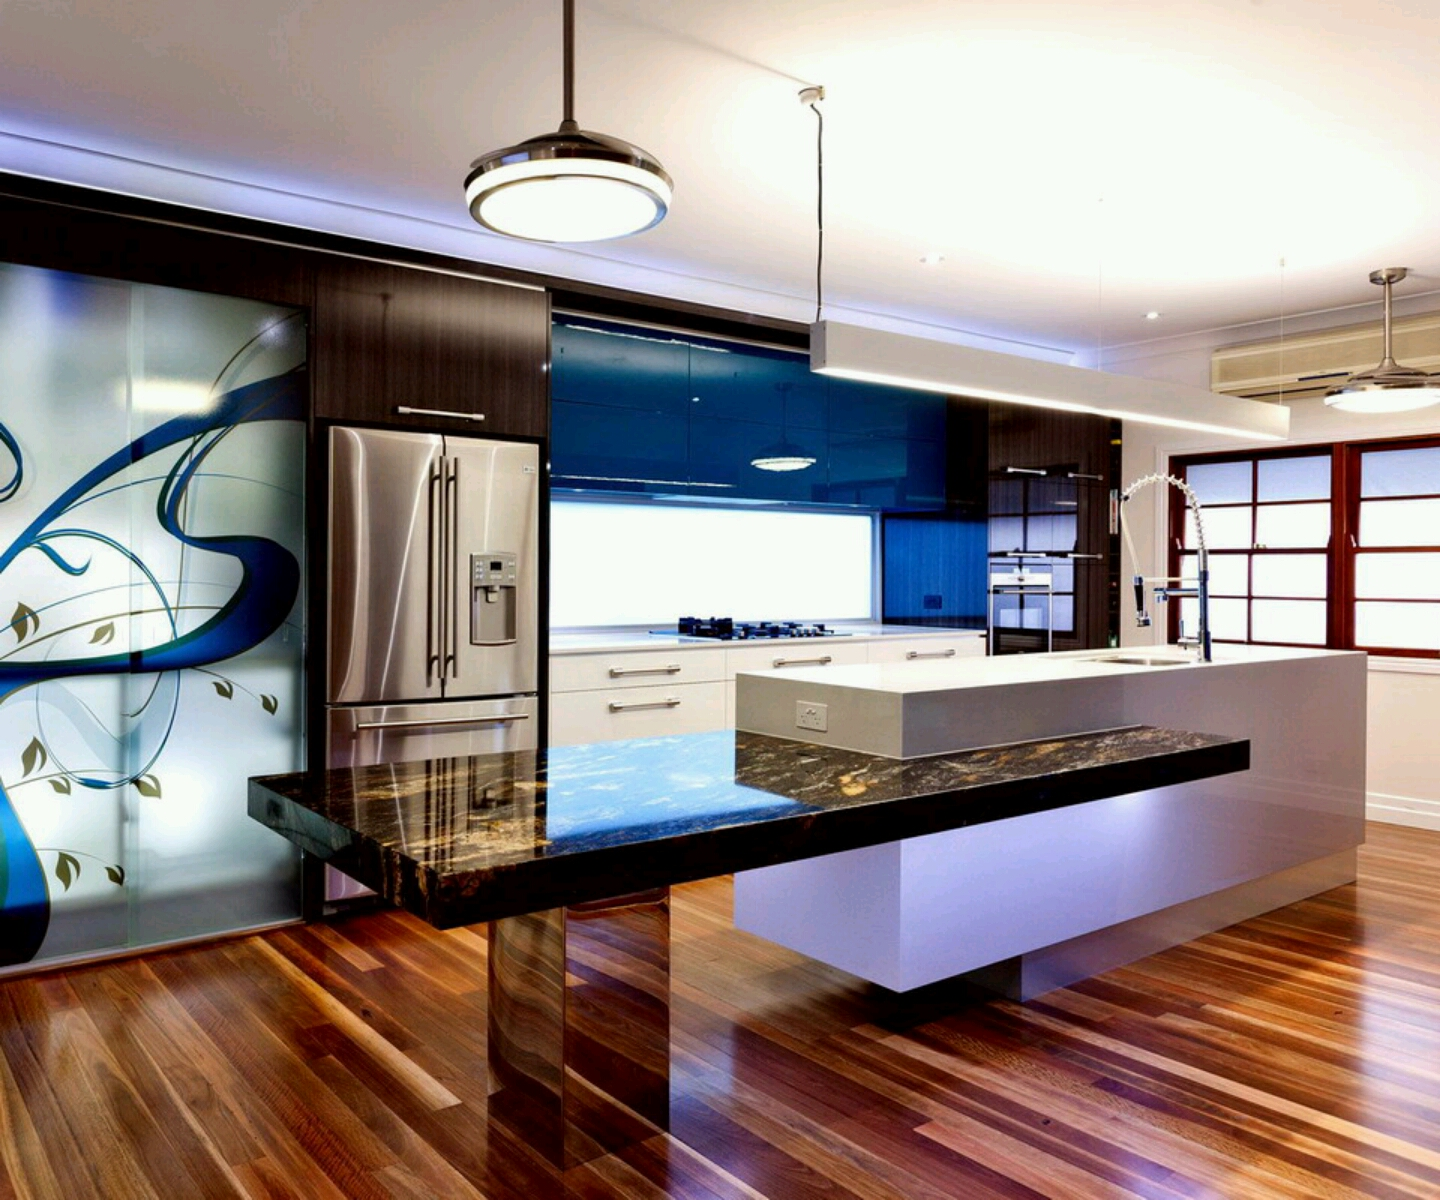 Ultra modern kitchen designs ideas - Modern kitchen design photos ...